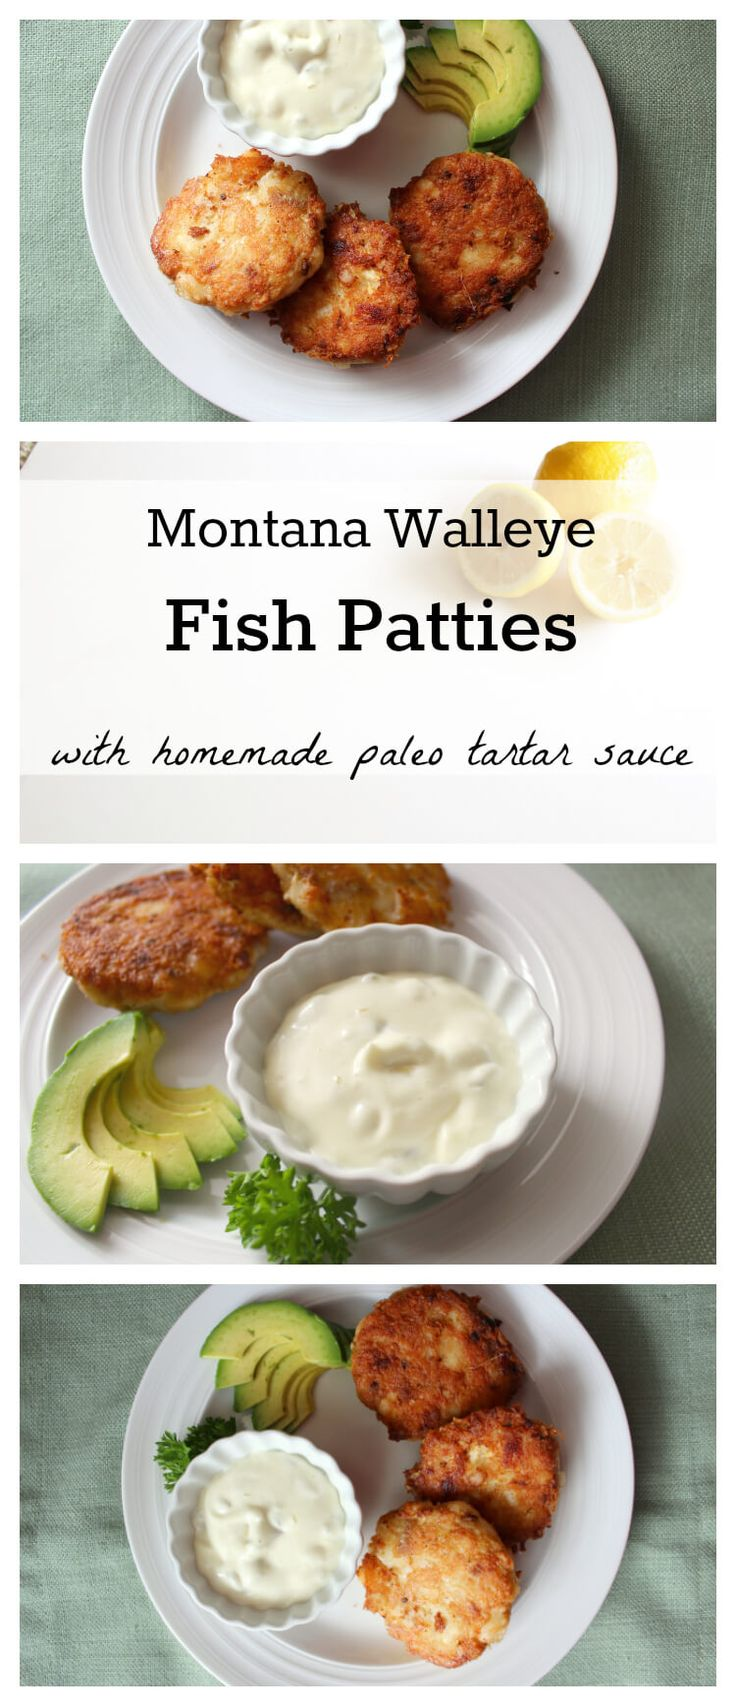 Every year our family took a trip Southern California to visit my grandparents, where they would treat us to a dinner out at Newport Beach's Crab Cooker.  My grandmother would order a G&T and always the Crab Cakes.  That tradition inspired a new Montana-Style family favorite: Fish Patties! Made with fresh-caught Walleye (though you can...